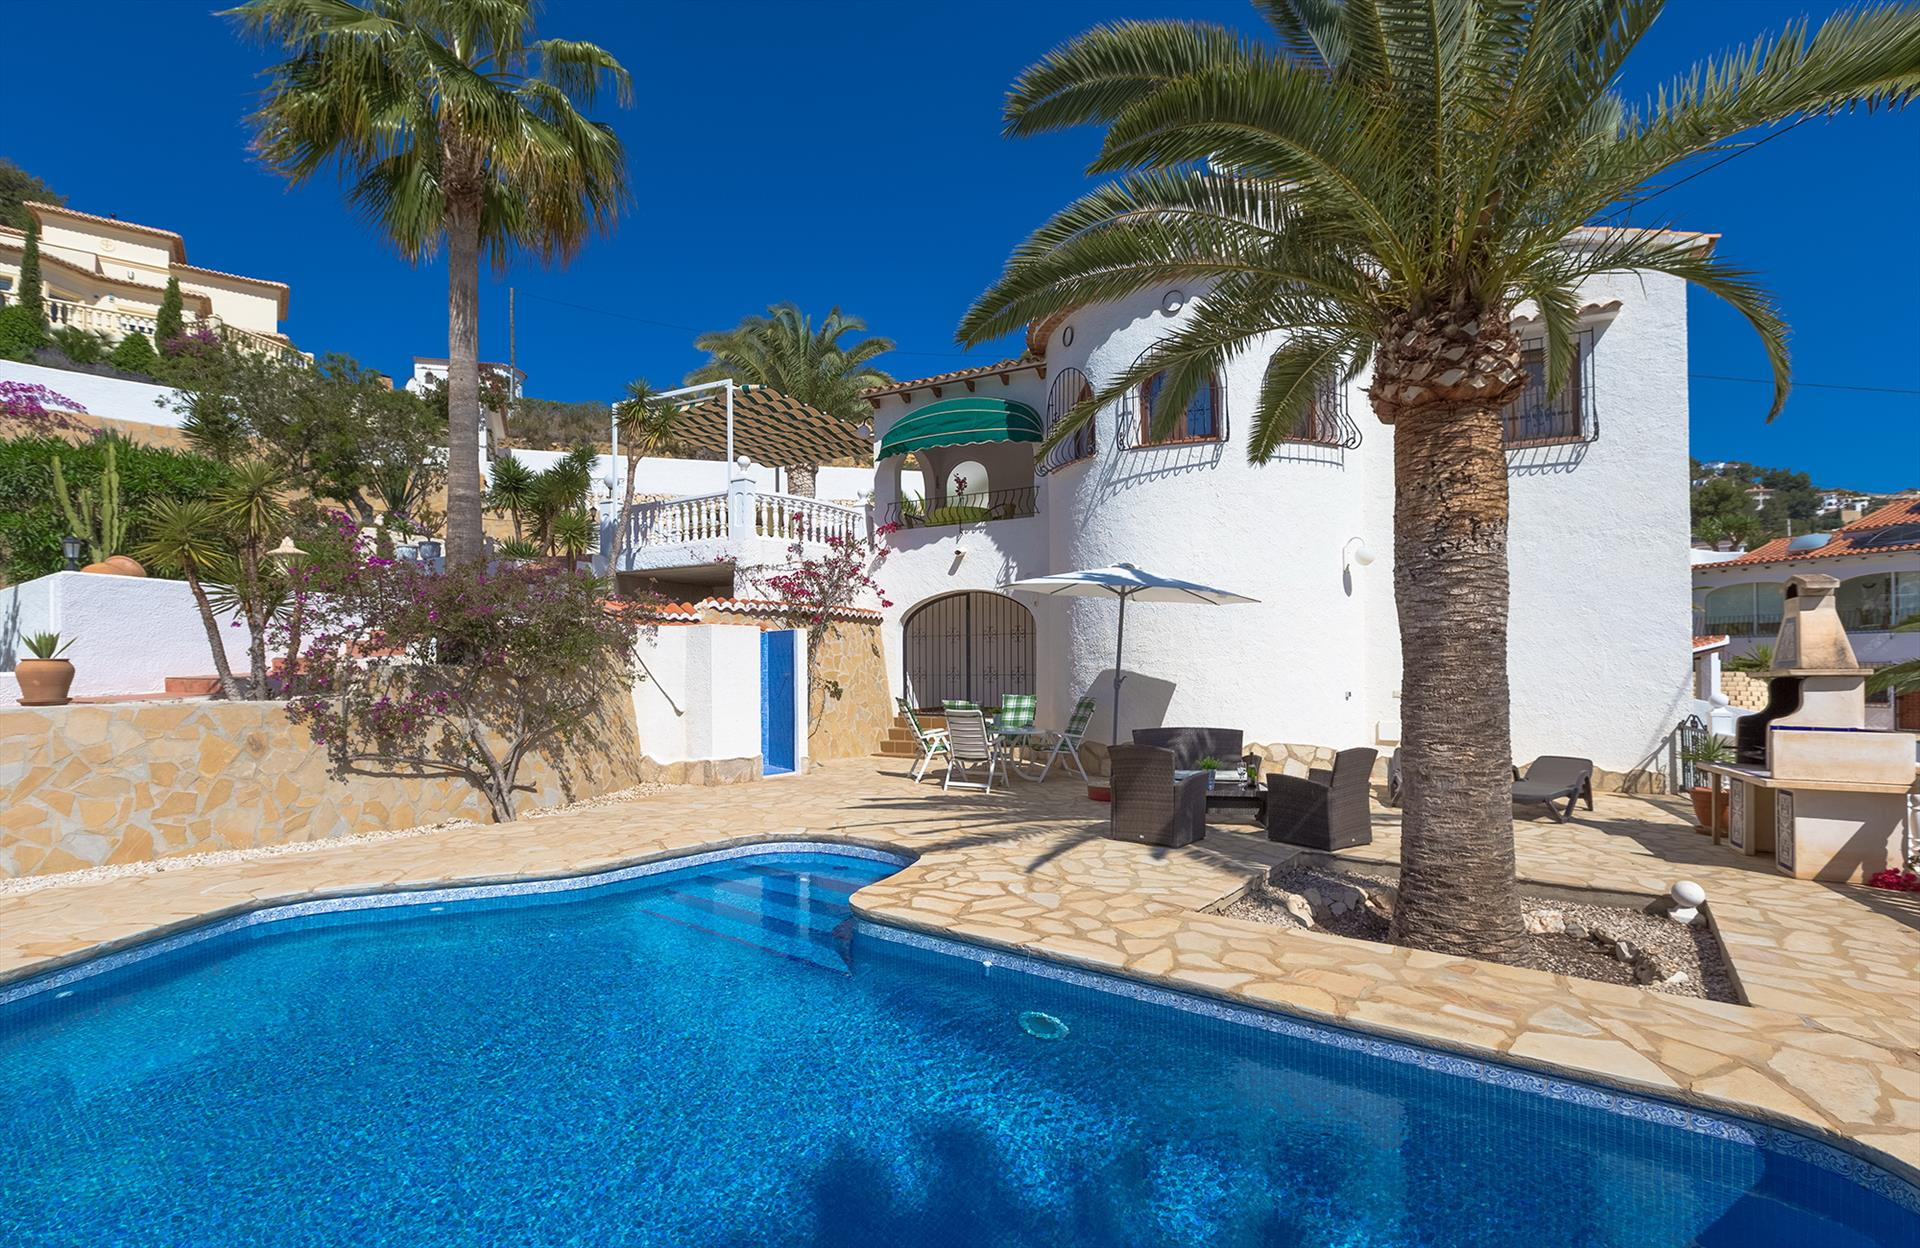 Ritter, Rustic and comfortable villa in Benissa, on the Costa Blanca, Spain  with private pool for 6 persons.....